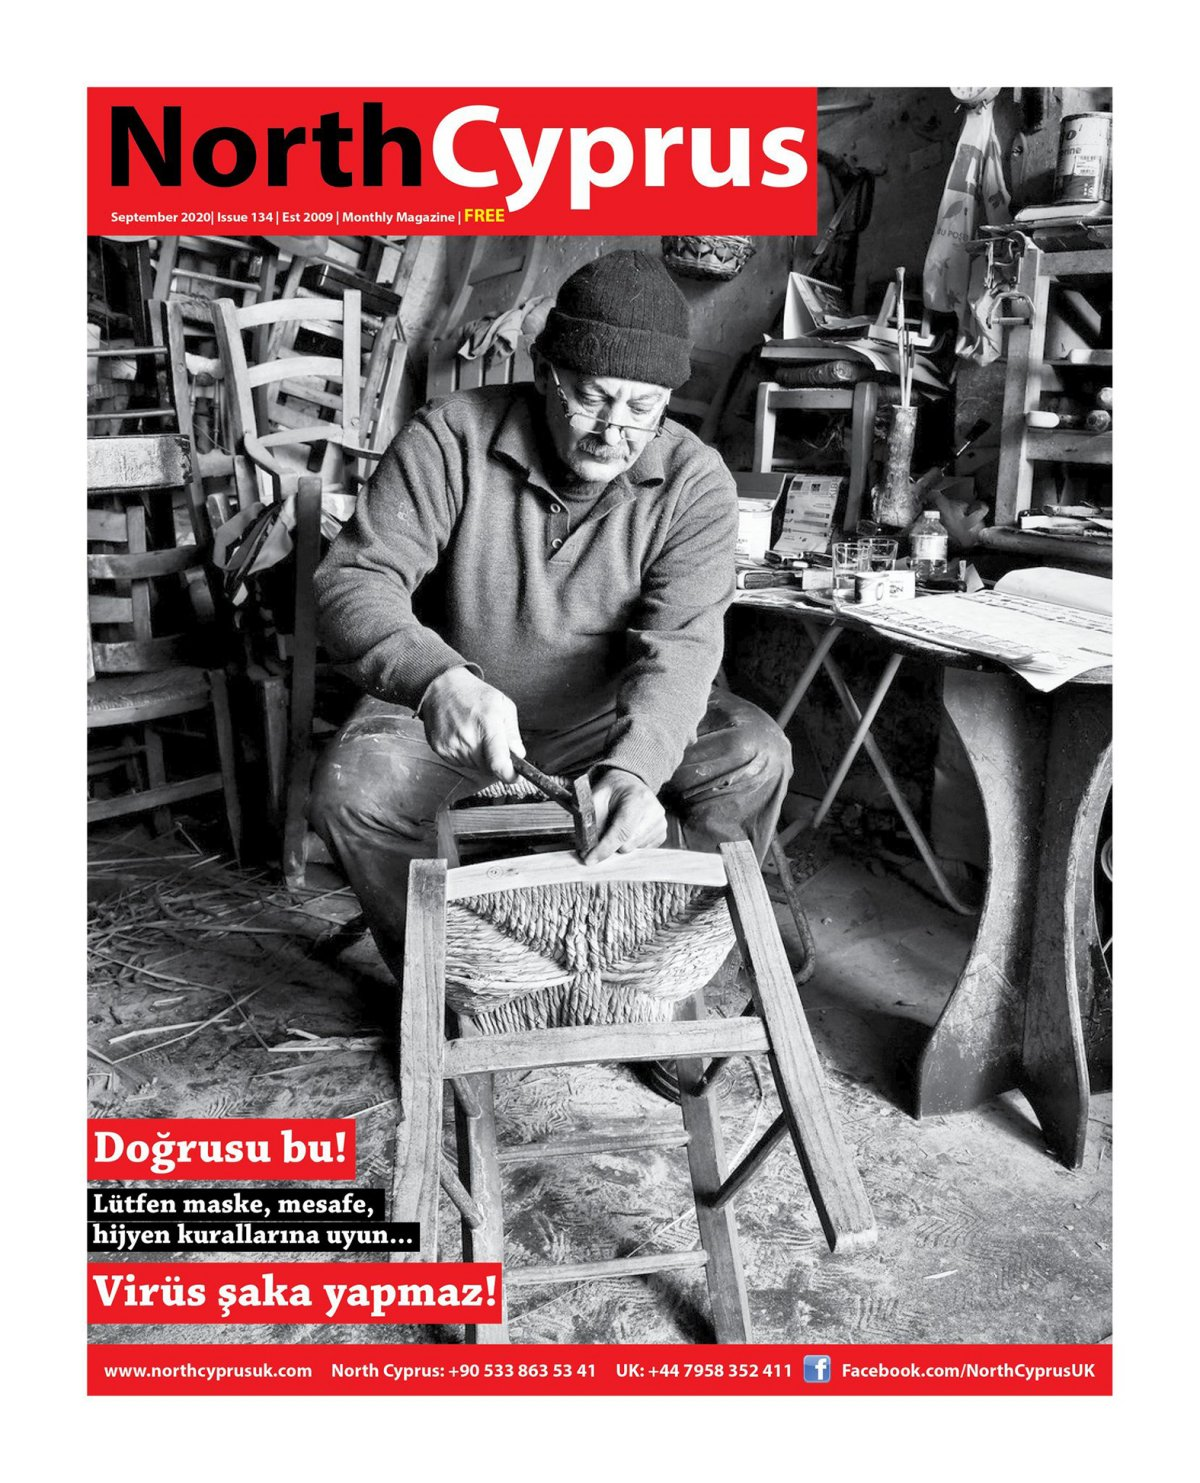 North Cyprus UK - 11.09.2020 Manşeti